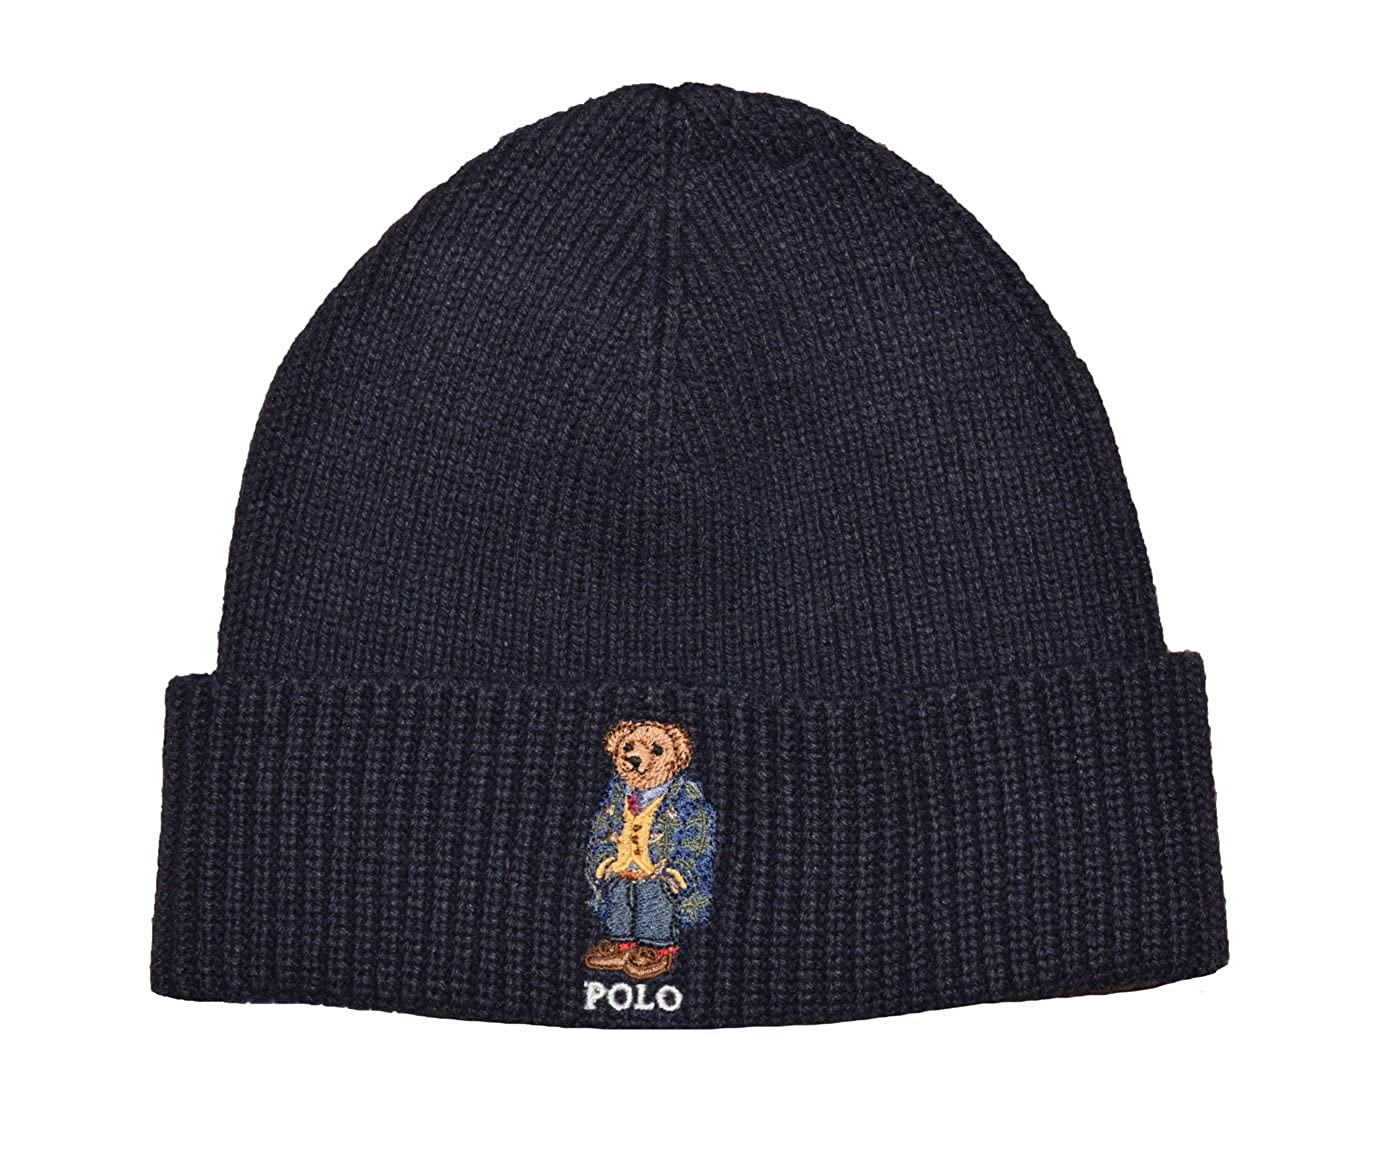 Polo Ralph Lauren Men s Knit Cuff Beanie Hat One Size NAVY at Amazon Men s  Clothing store  ca3007c5363